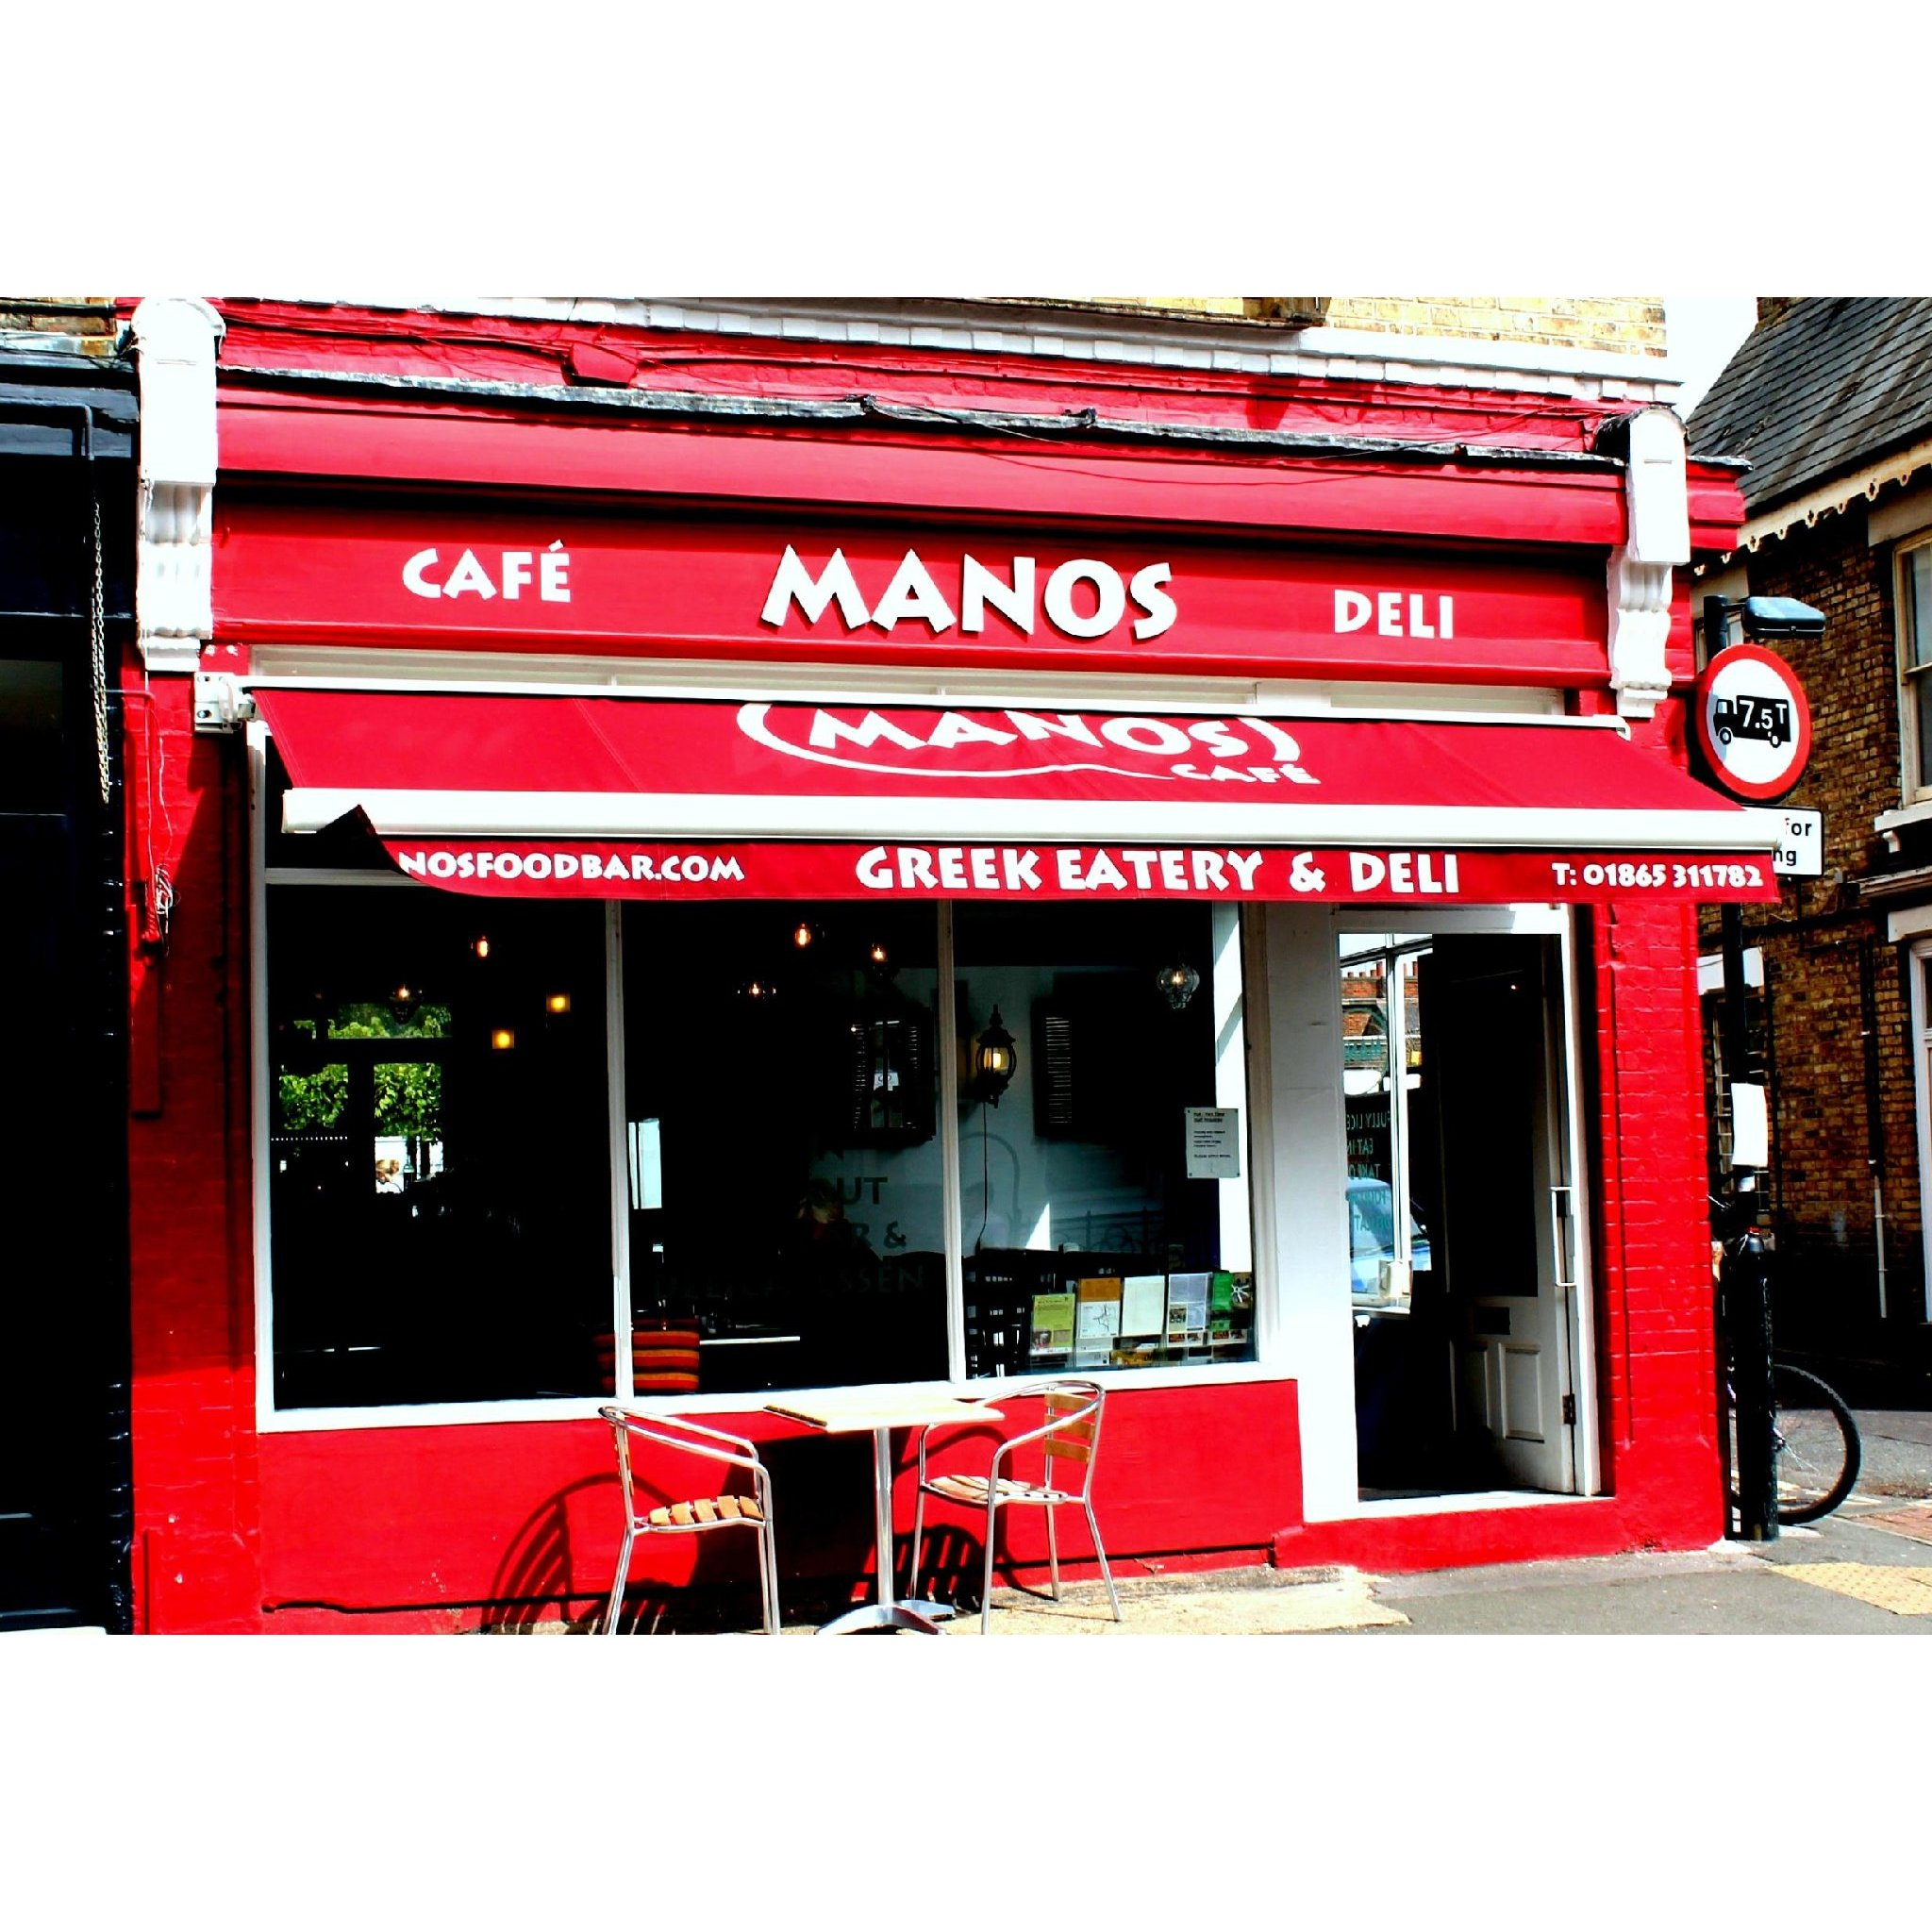 Manos fresh food bar restaurant greek in oxford ox2 for Food bar 8 0